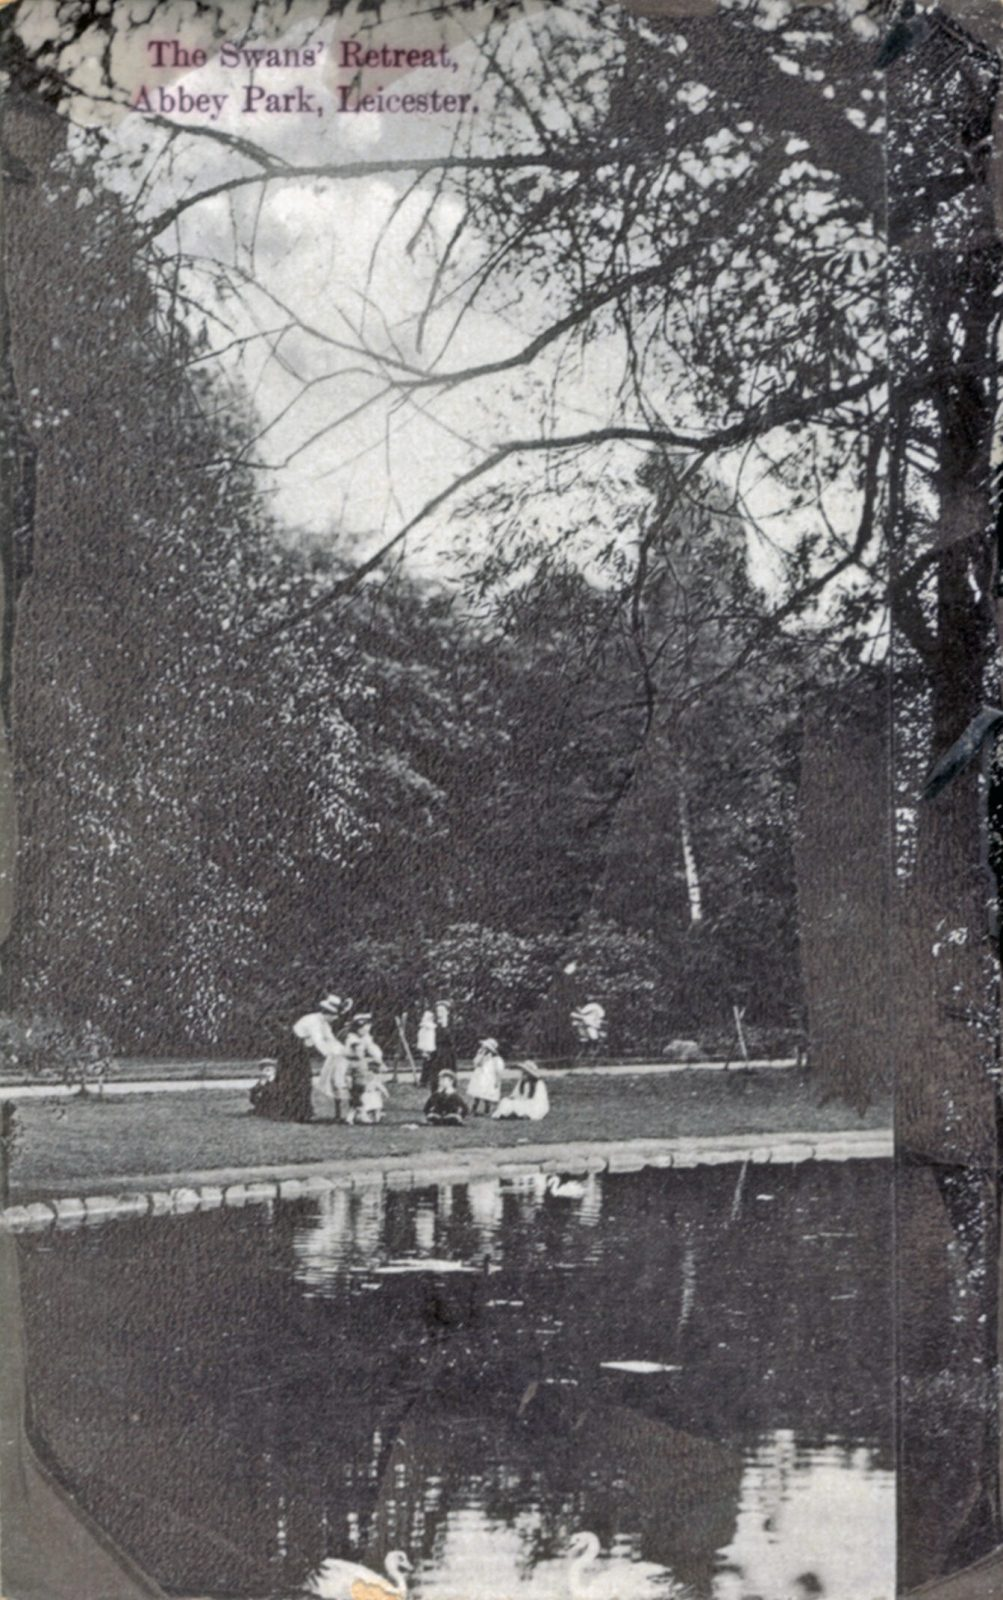 Abbey Park, Leicester. 1901-1920: The Swans Retreat with a family picnic. (File:1208)